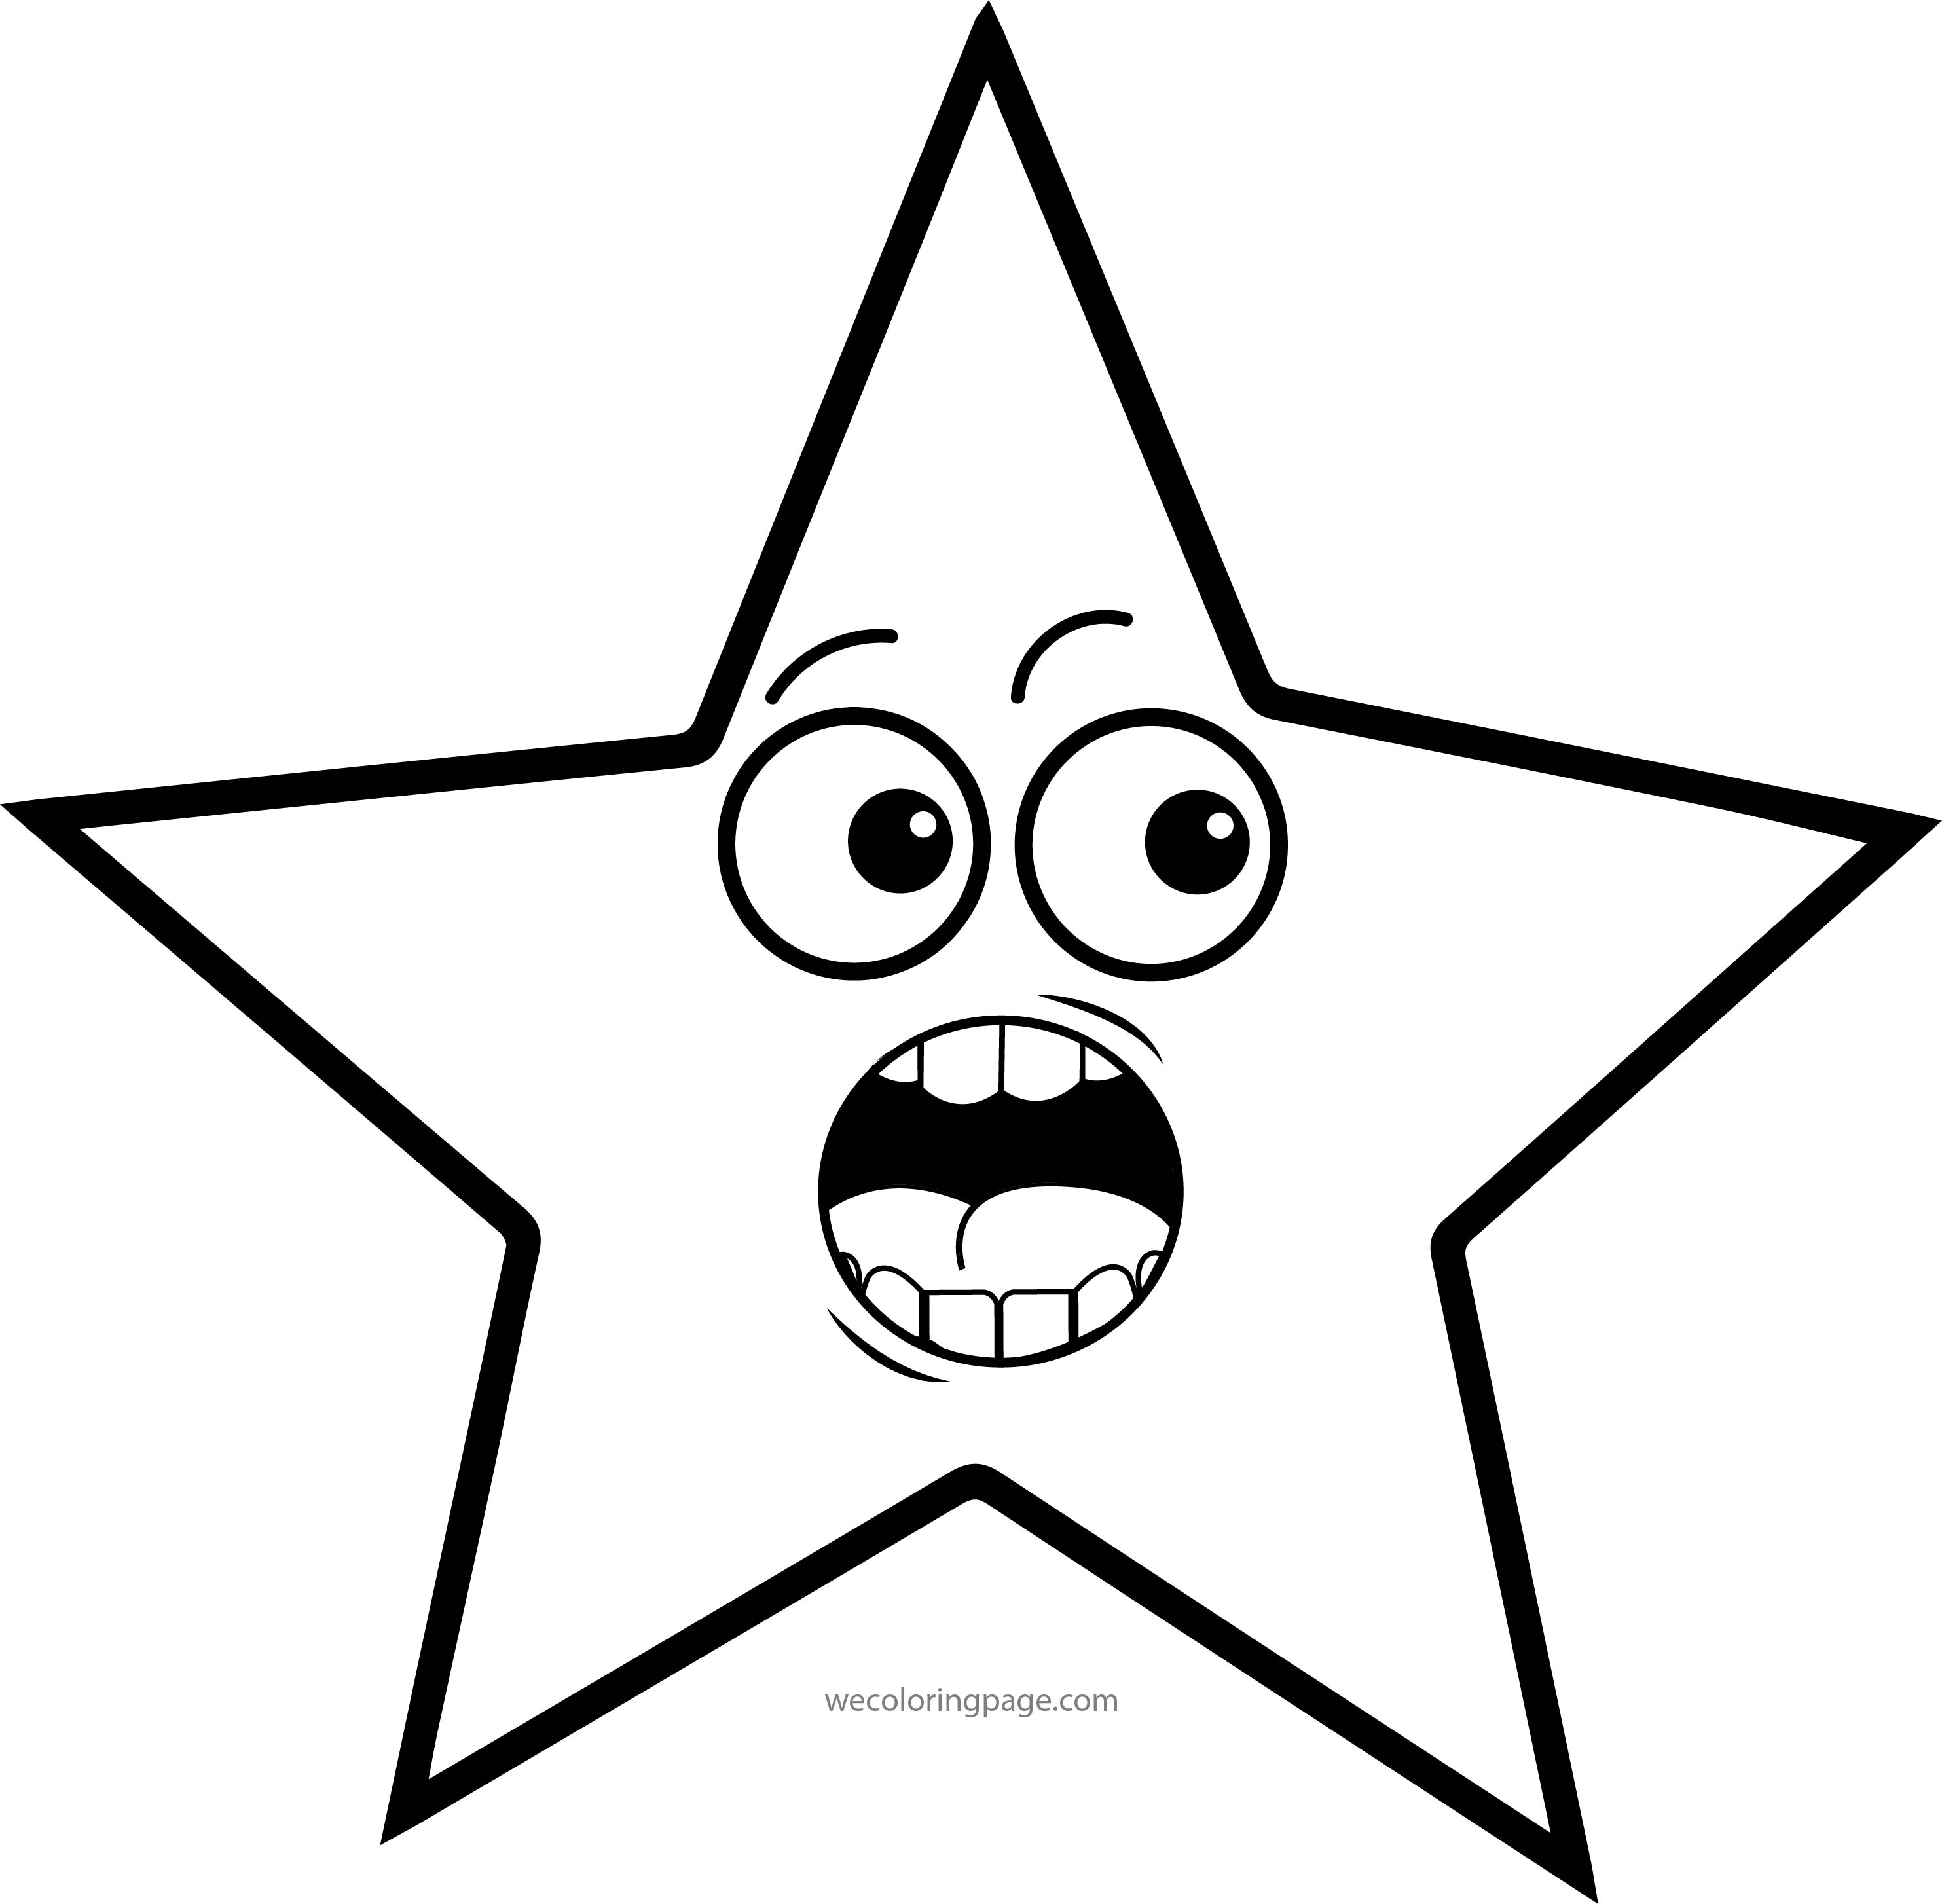 coloring pages of stars star coloring pages the sun flower pages of stars coloring pages